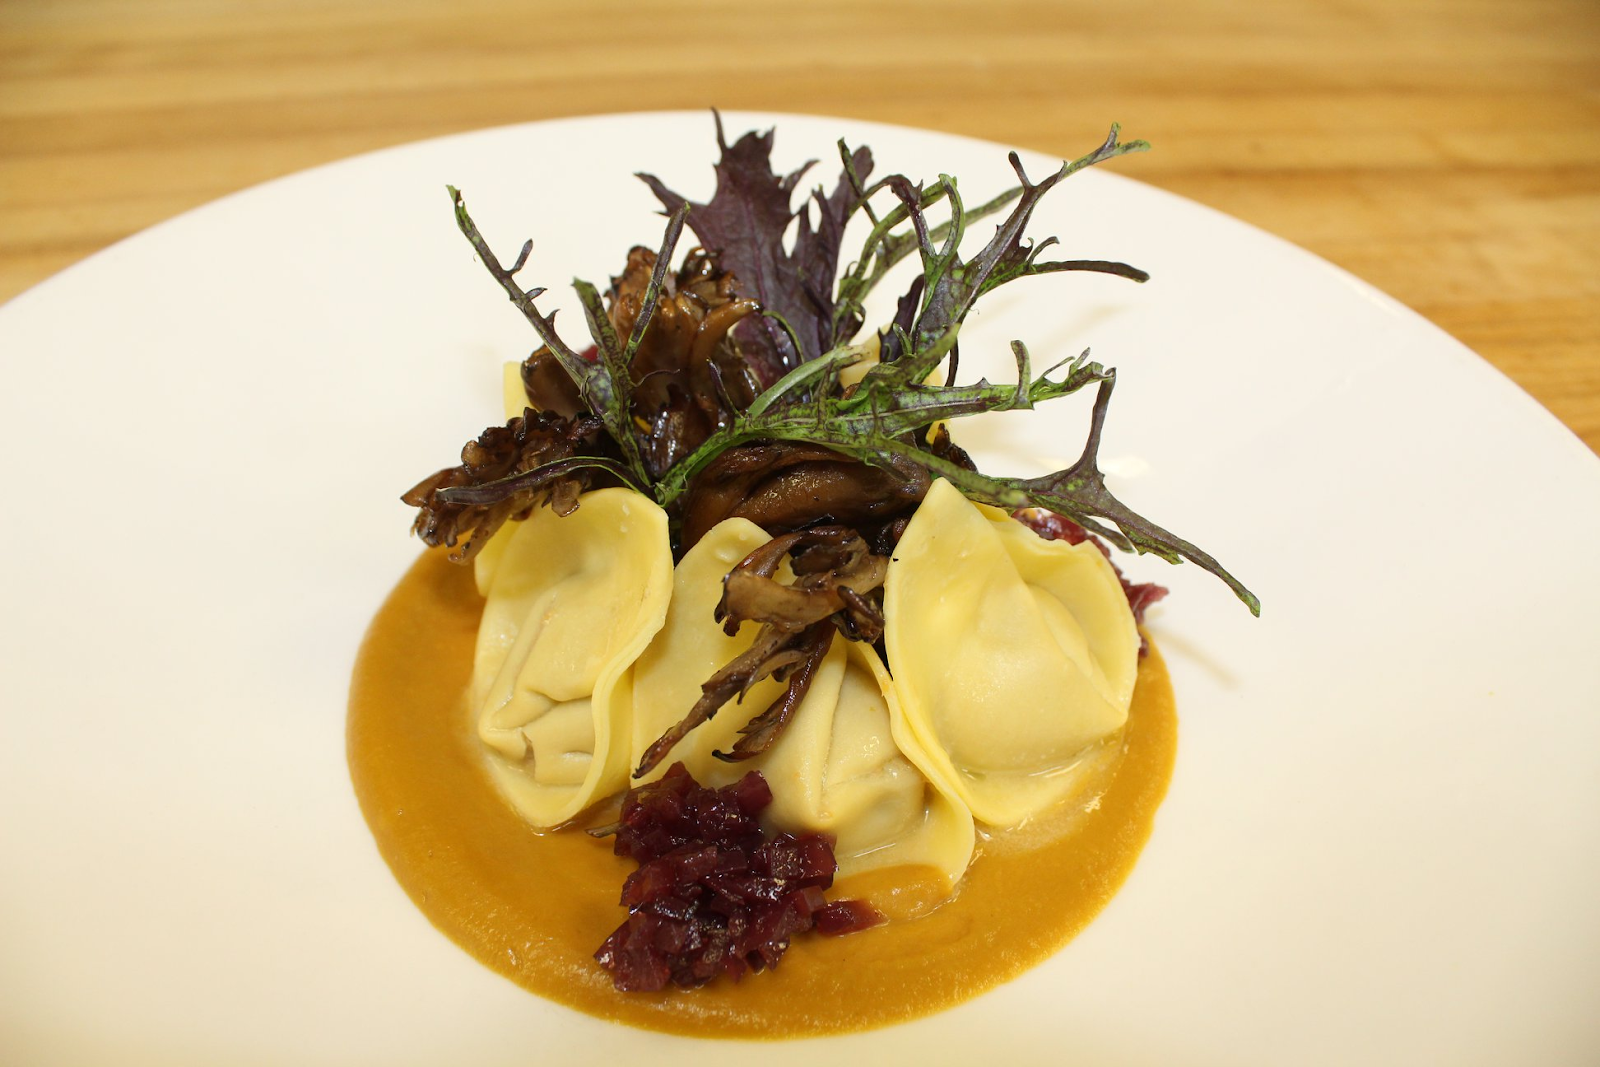 A creatively plated dish of won tons